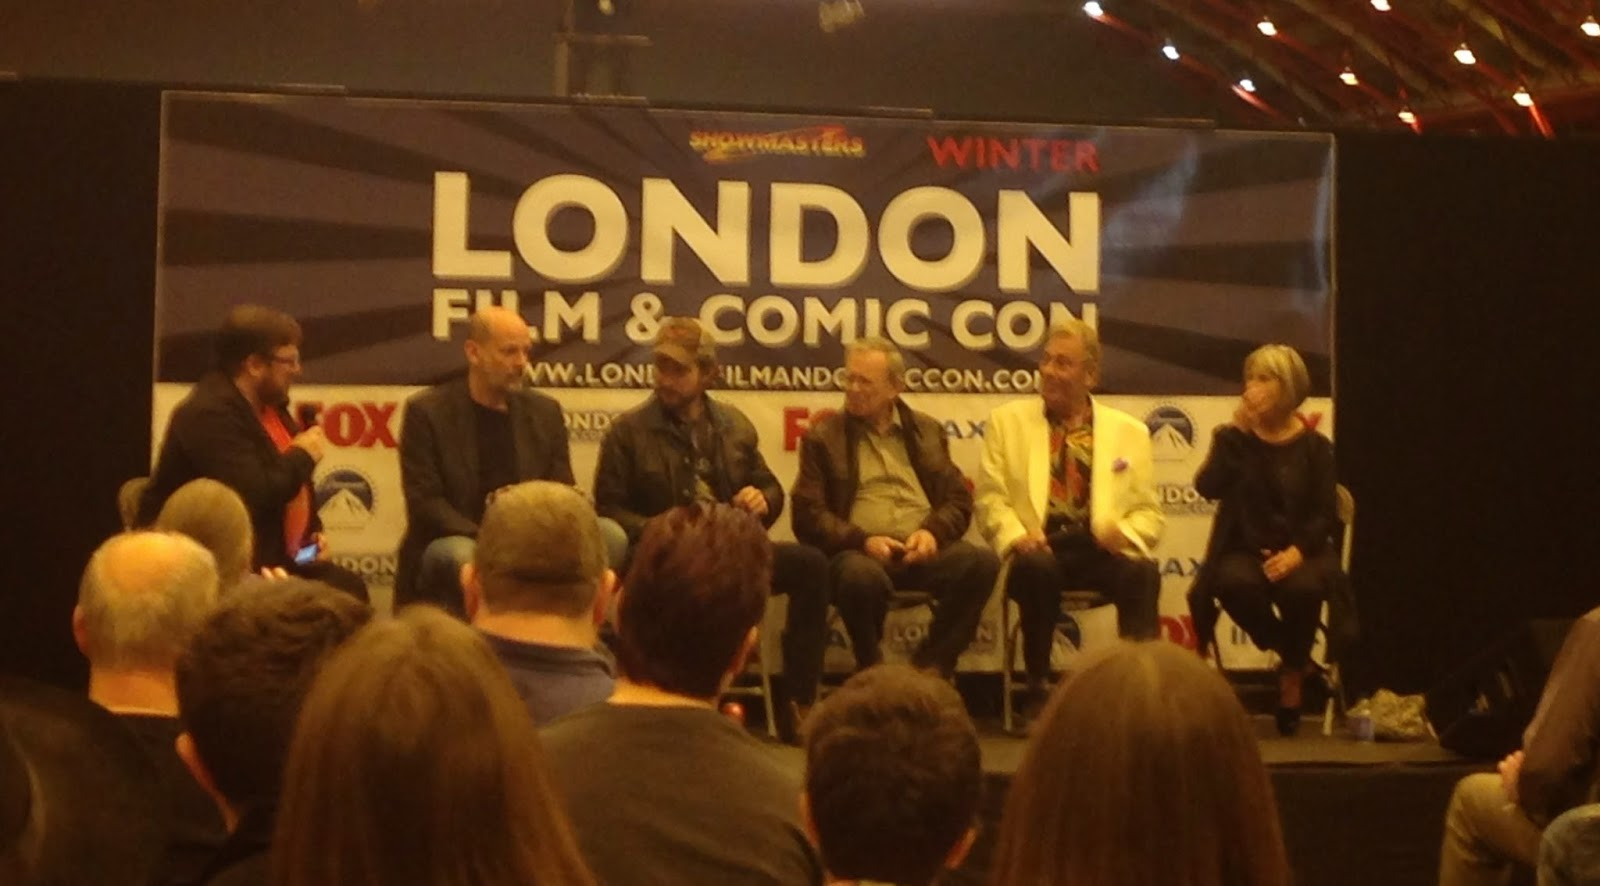 London Film & Comic Con Winter Doctor Who Panel